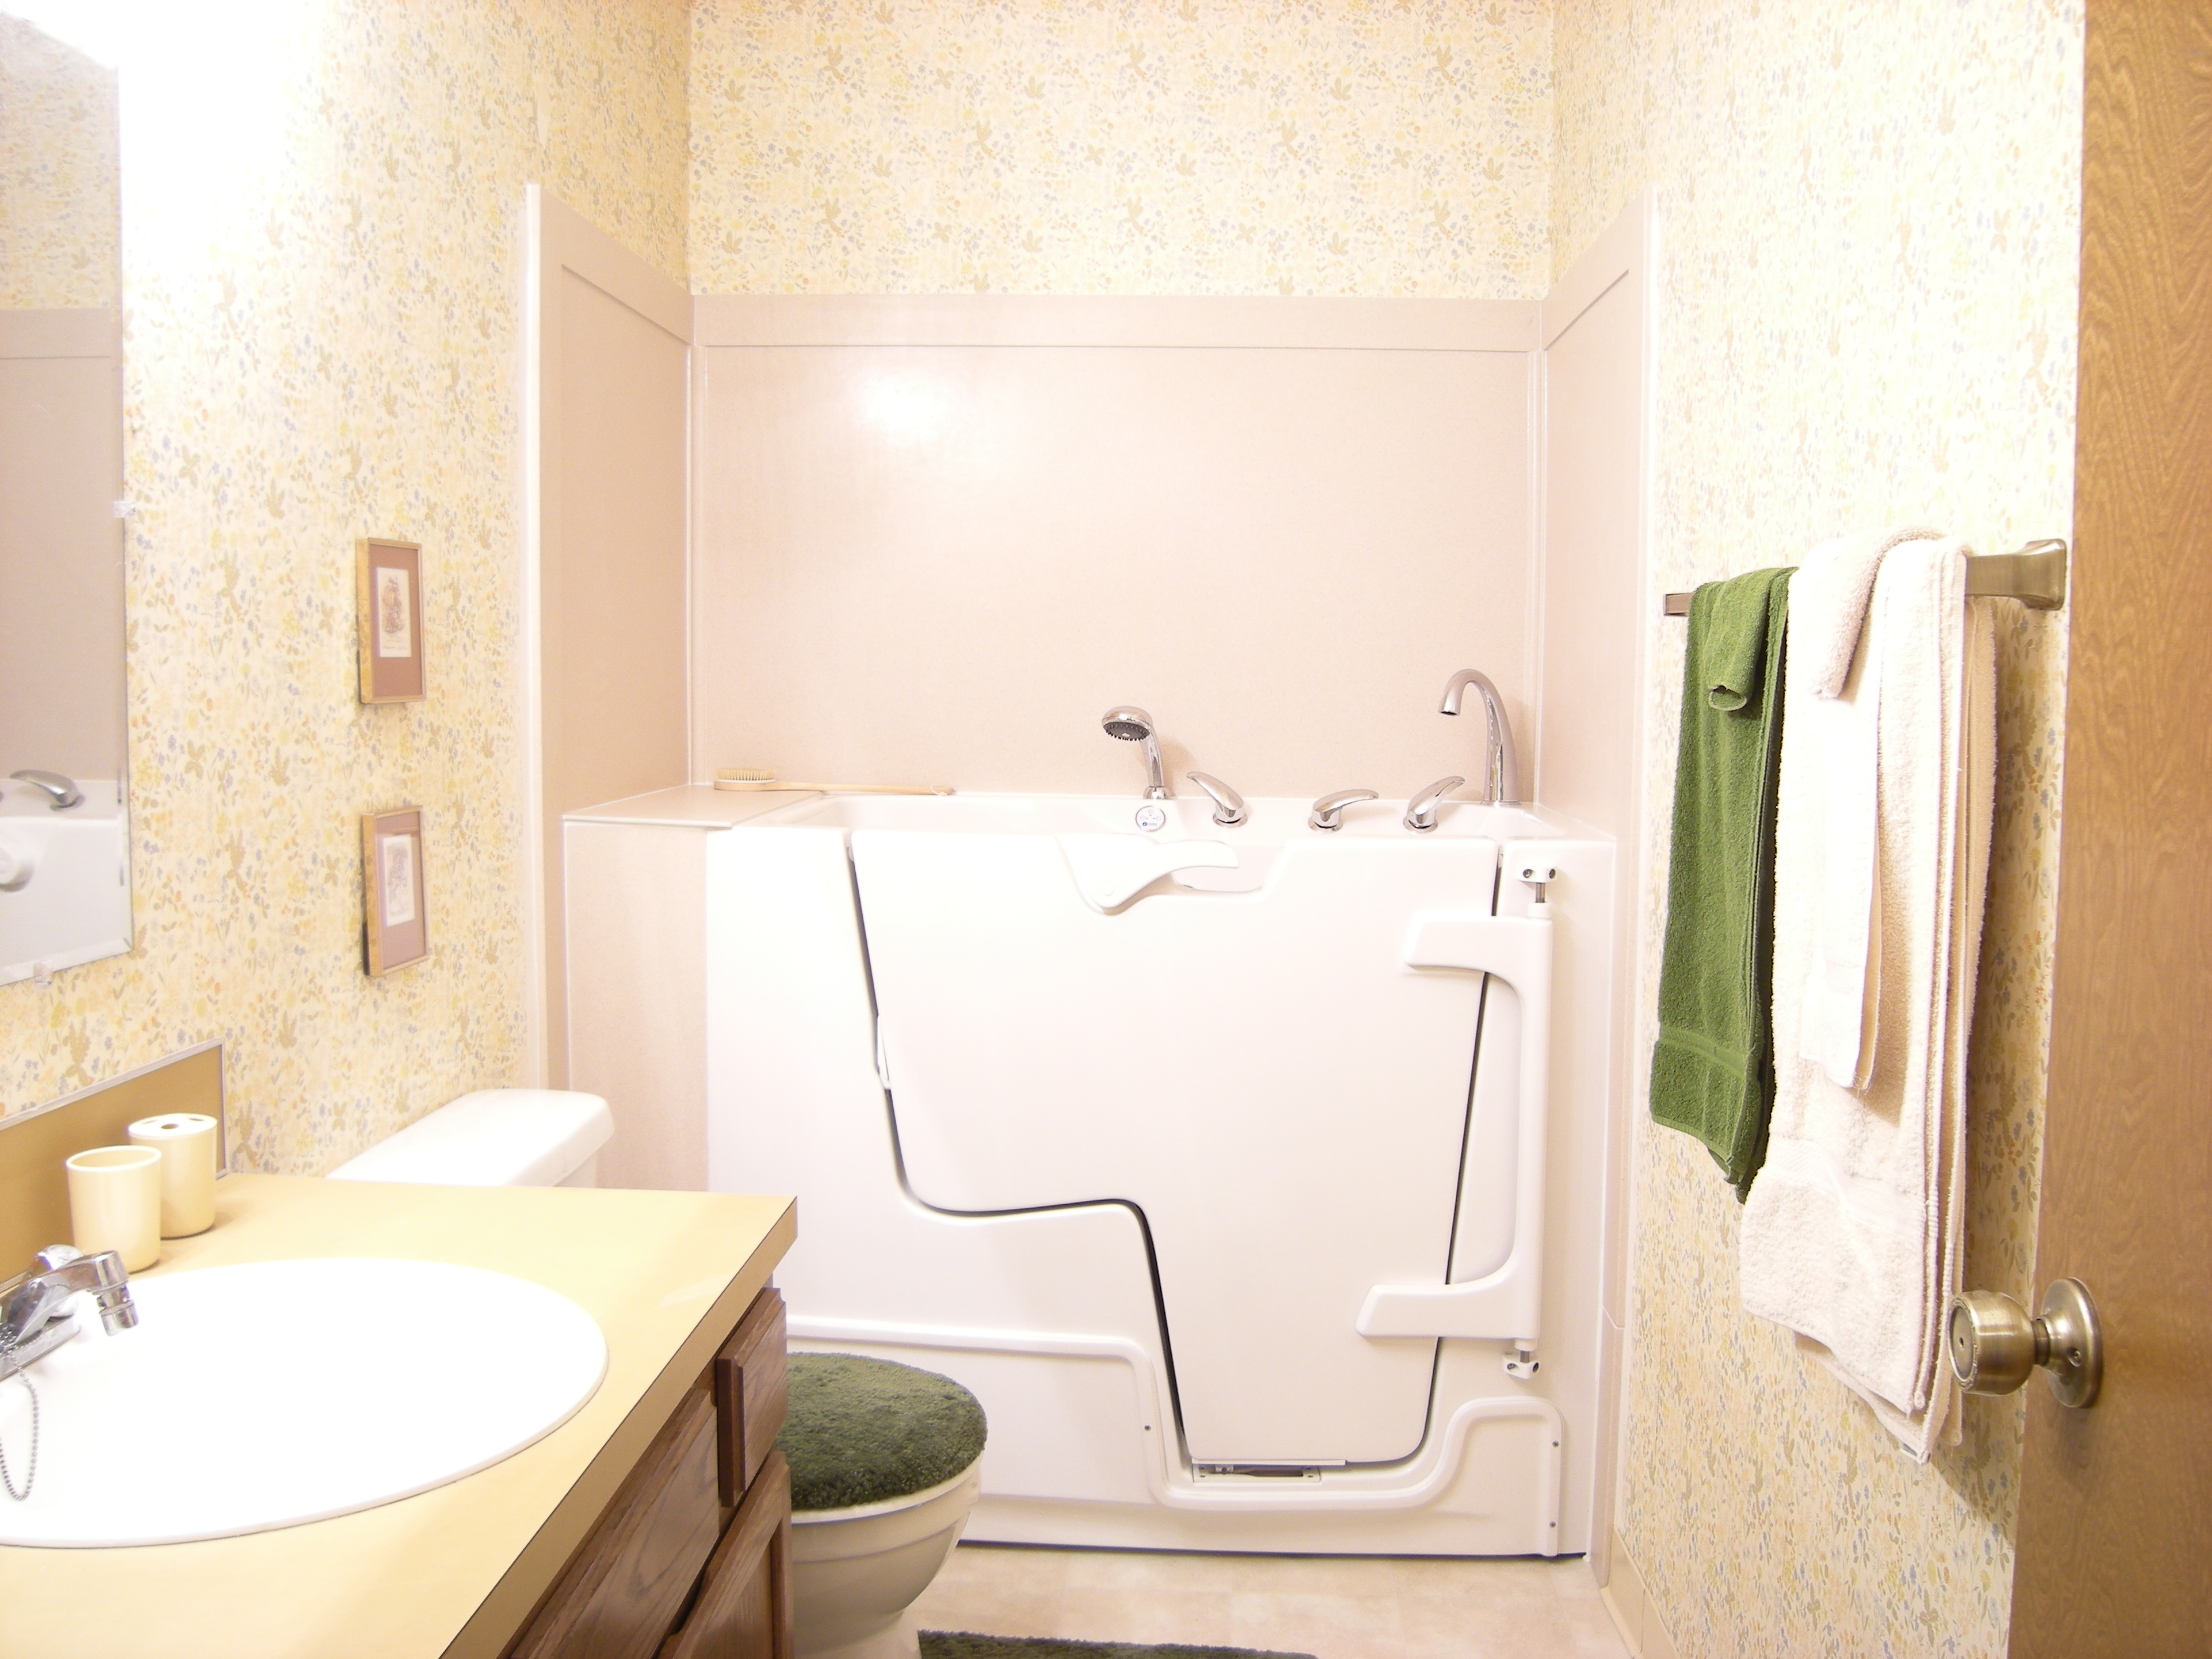 Bathroom Modifications For Aging In Place By Us Access At Home Inc - Bathroom modifications